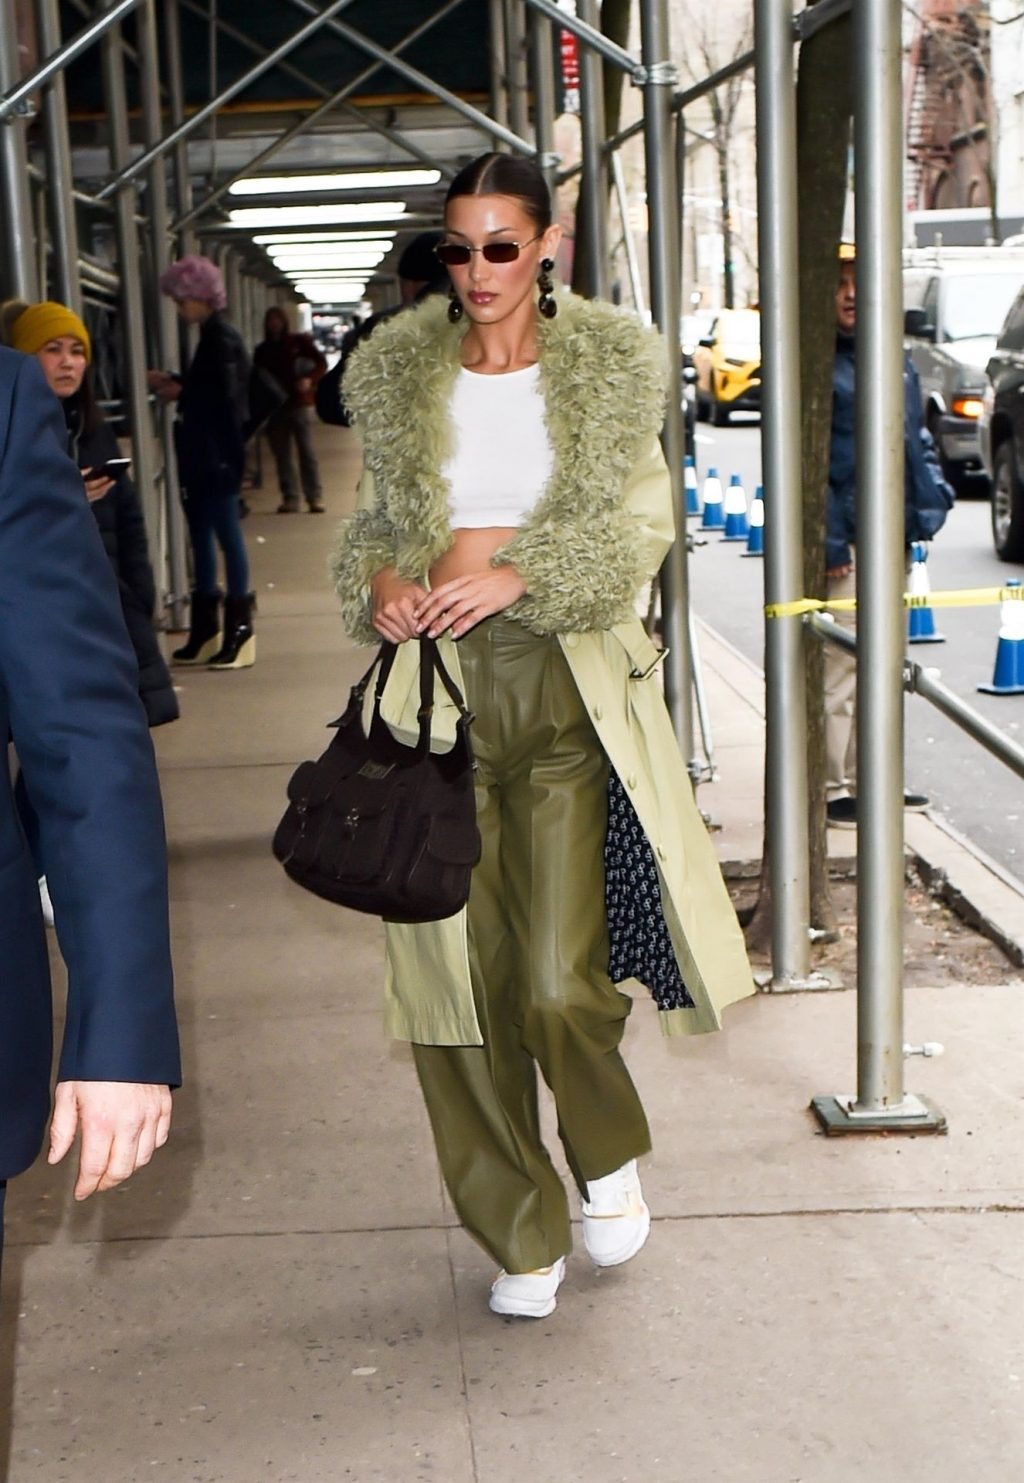 Bella Hadid See through The Fappening Blog 5 1 1024x1483 - Braless Bella Hadid Arrives at the Park Avenue Armory for the Marc Jacobs Fashion Show (59 Photos)